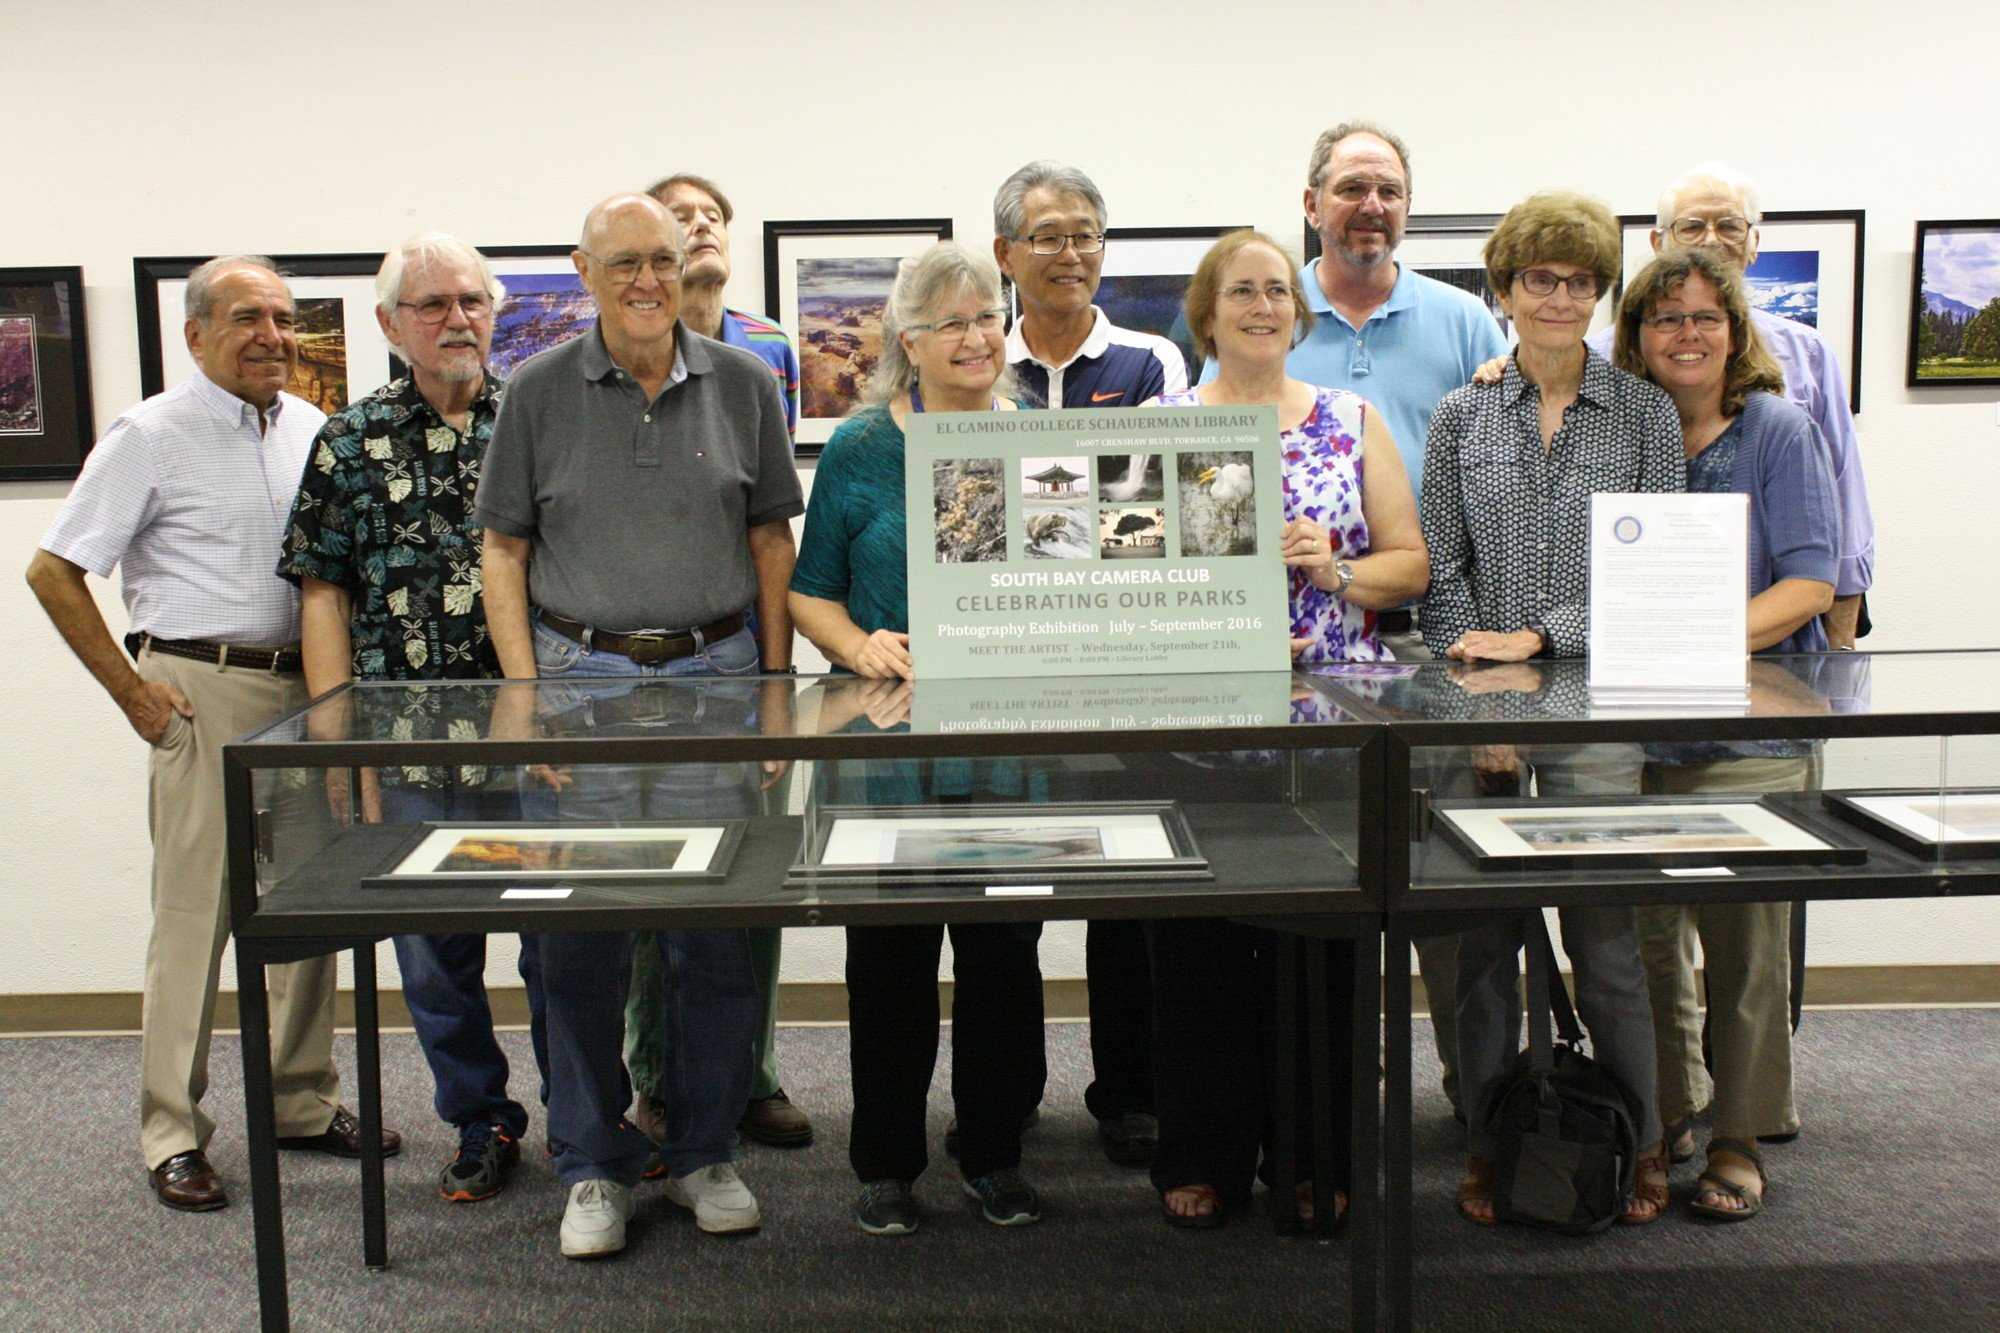 The South Bay Camera Club represents their latest photo exhibit,